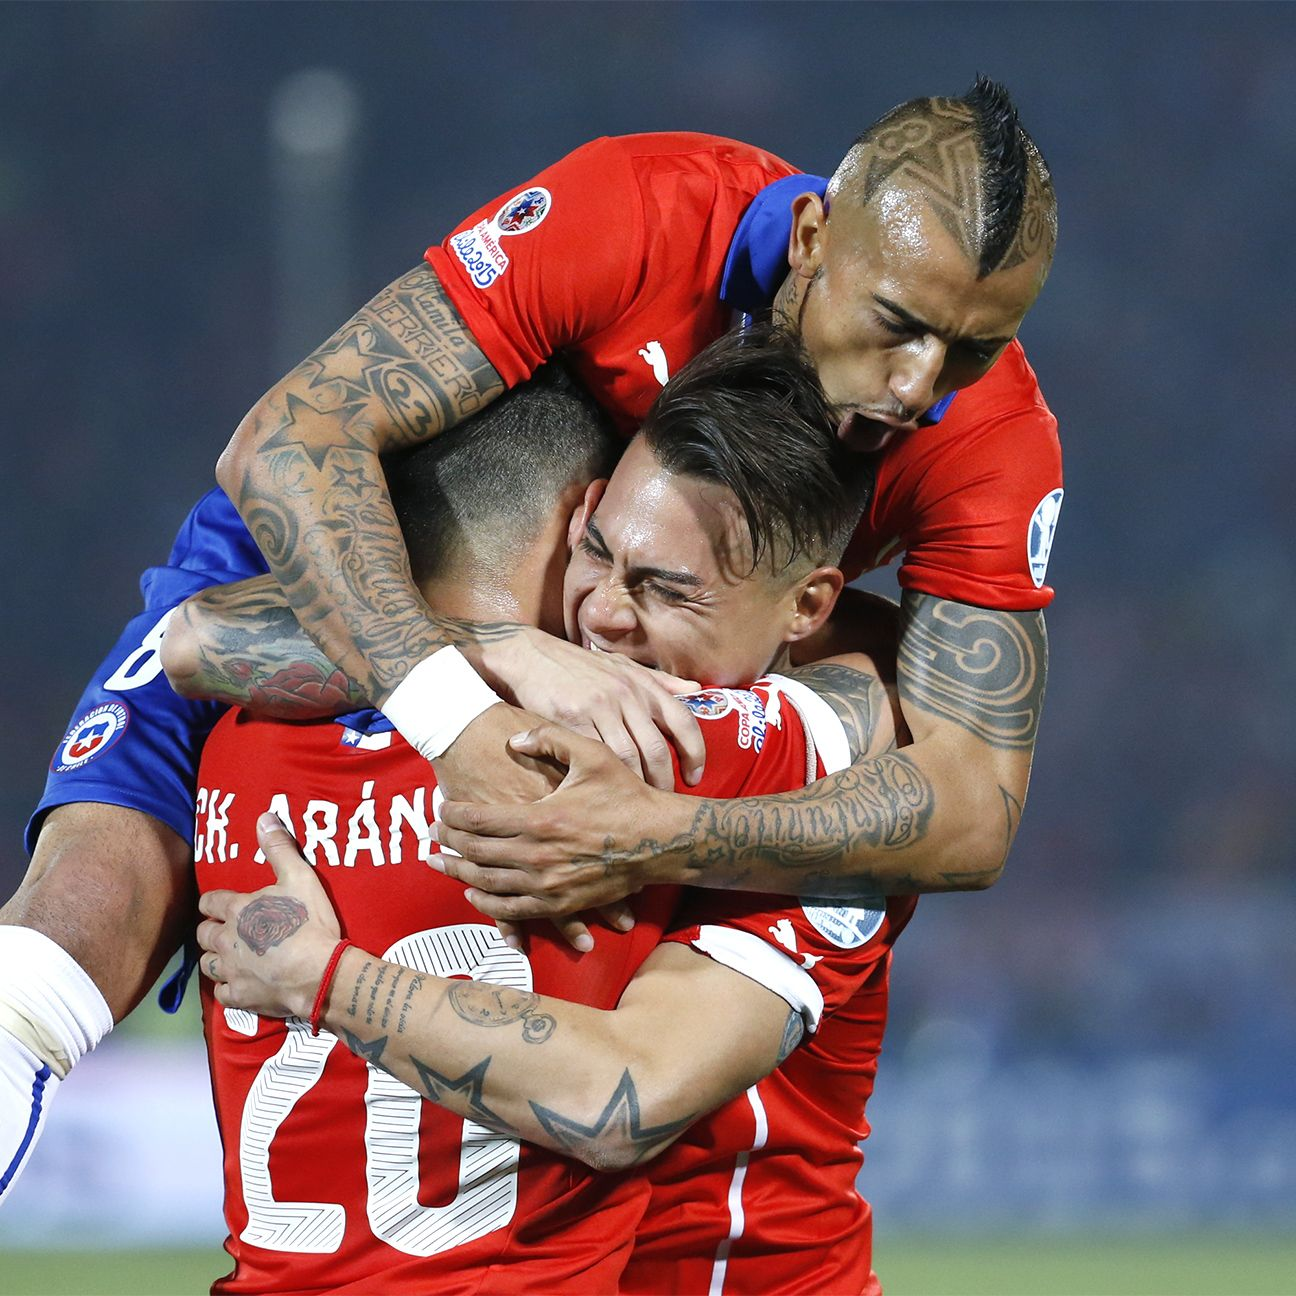 Chile can end their international trophy drought with a victory on Saturday versus Argentina.